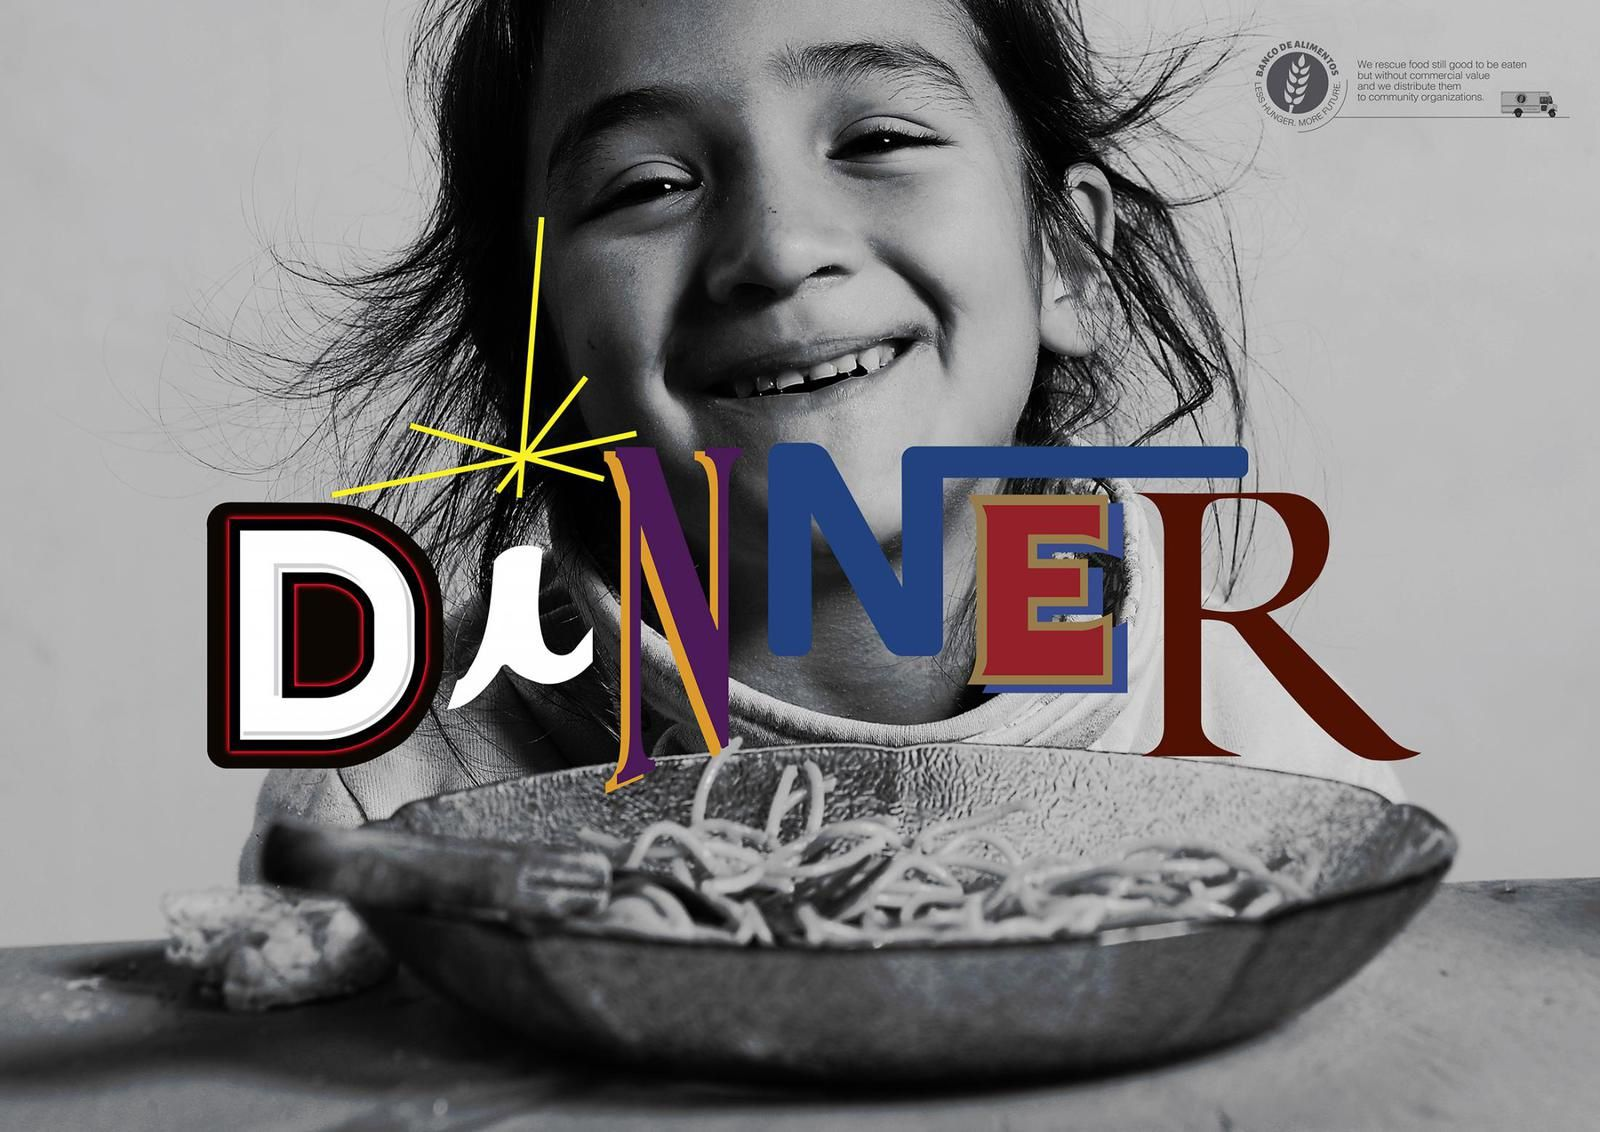 """""""We rescue food still good to be eaten but without commercial value and we distribute them to community organizations"""" - BANCO DE ALIMENTOS (Banque Alimentaire) I Agence : Mercado McCann, Argentine (avril 2017)"""